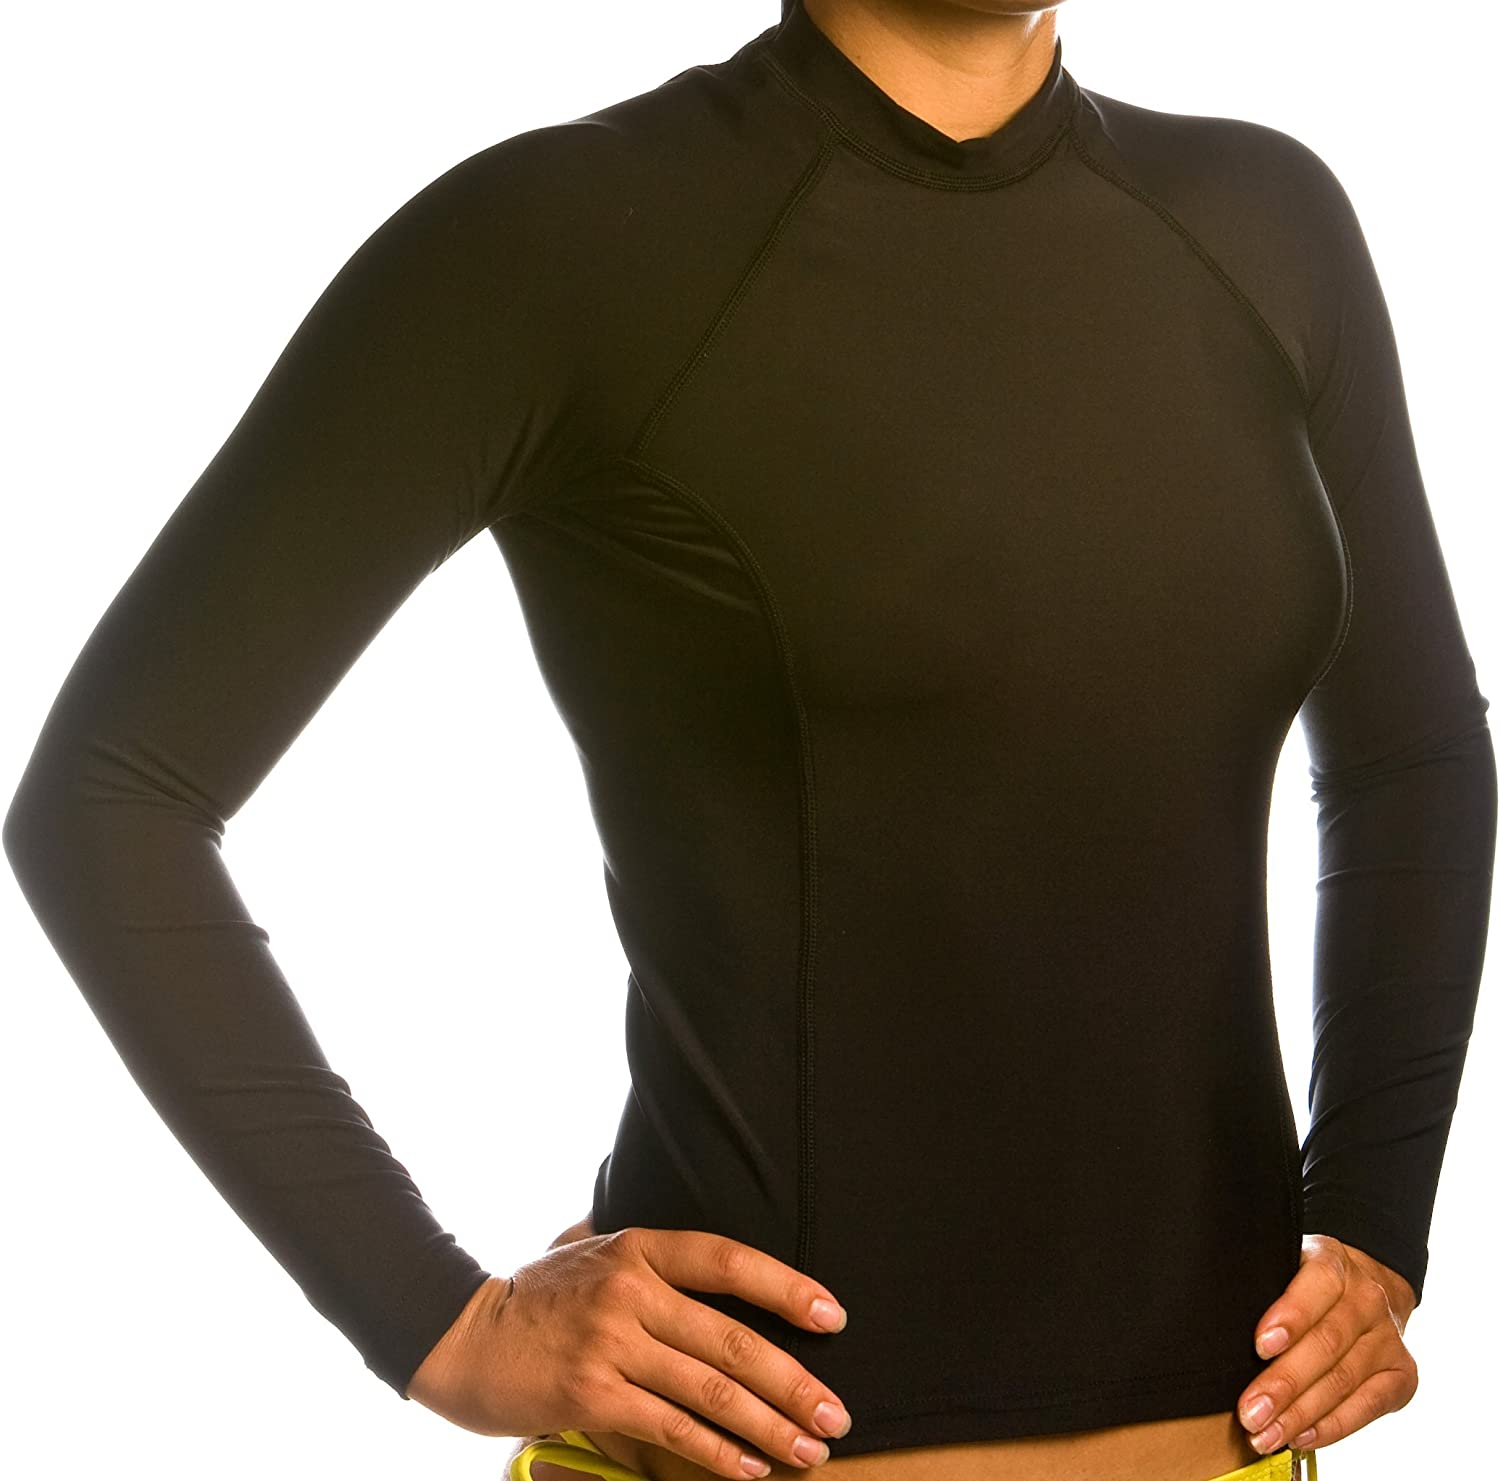 Beach Depot Women's Black Long Sleeve Rash Guard SPF 50+ Swim Shirt